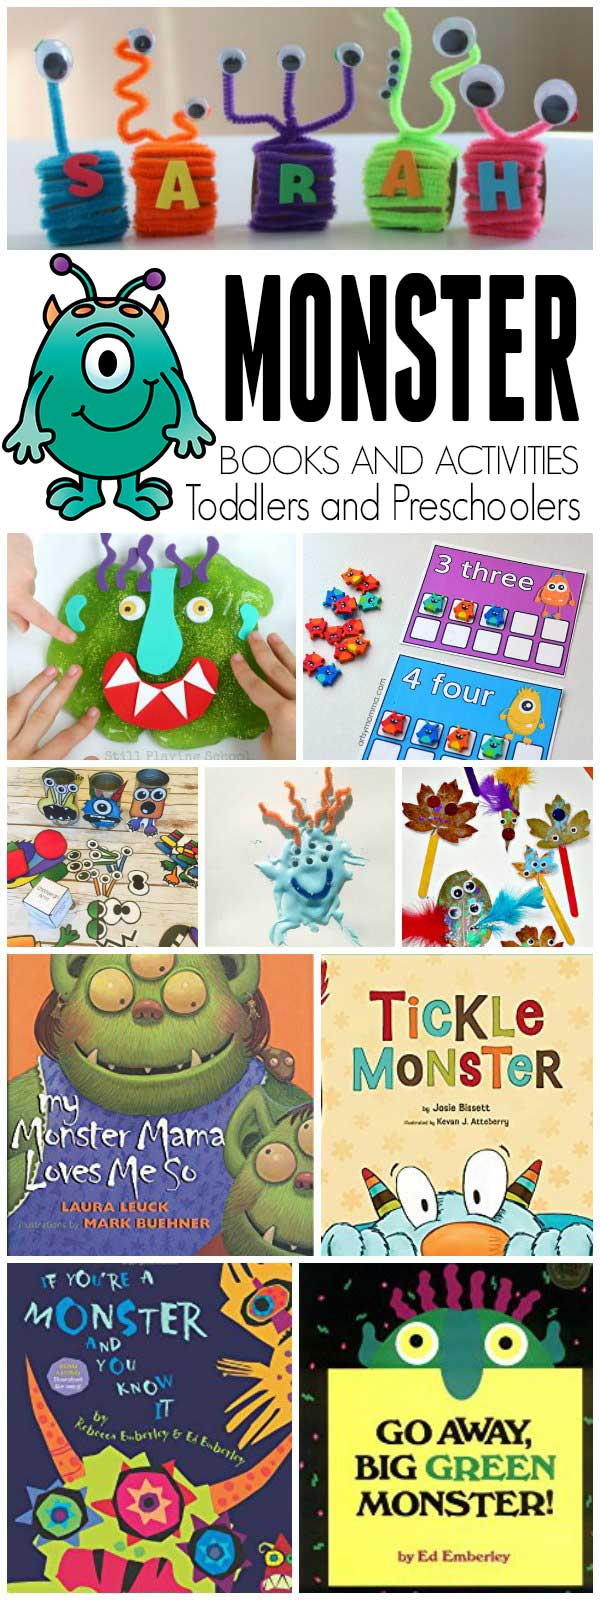 Monster-themed fun and learning based on the book Go Away Big Green Monster by Ed Emberley for toddlers and preschoolers.